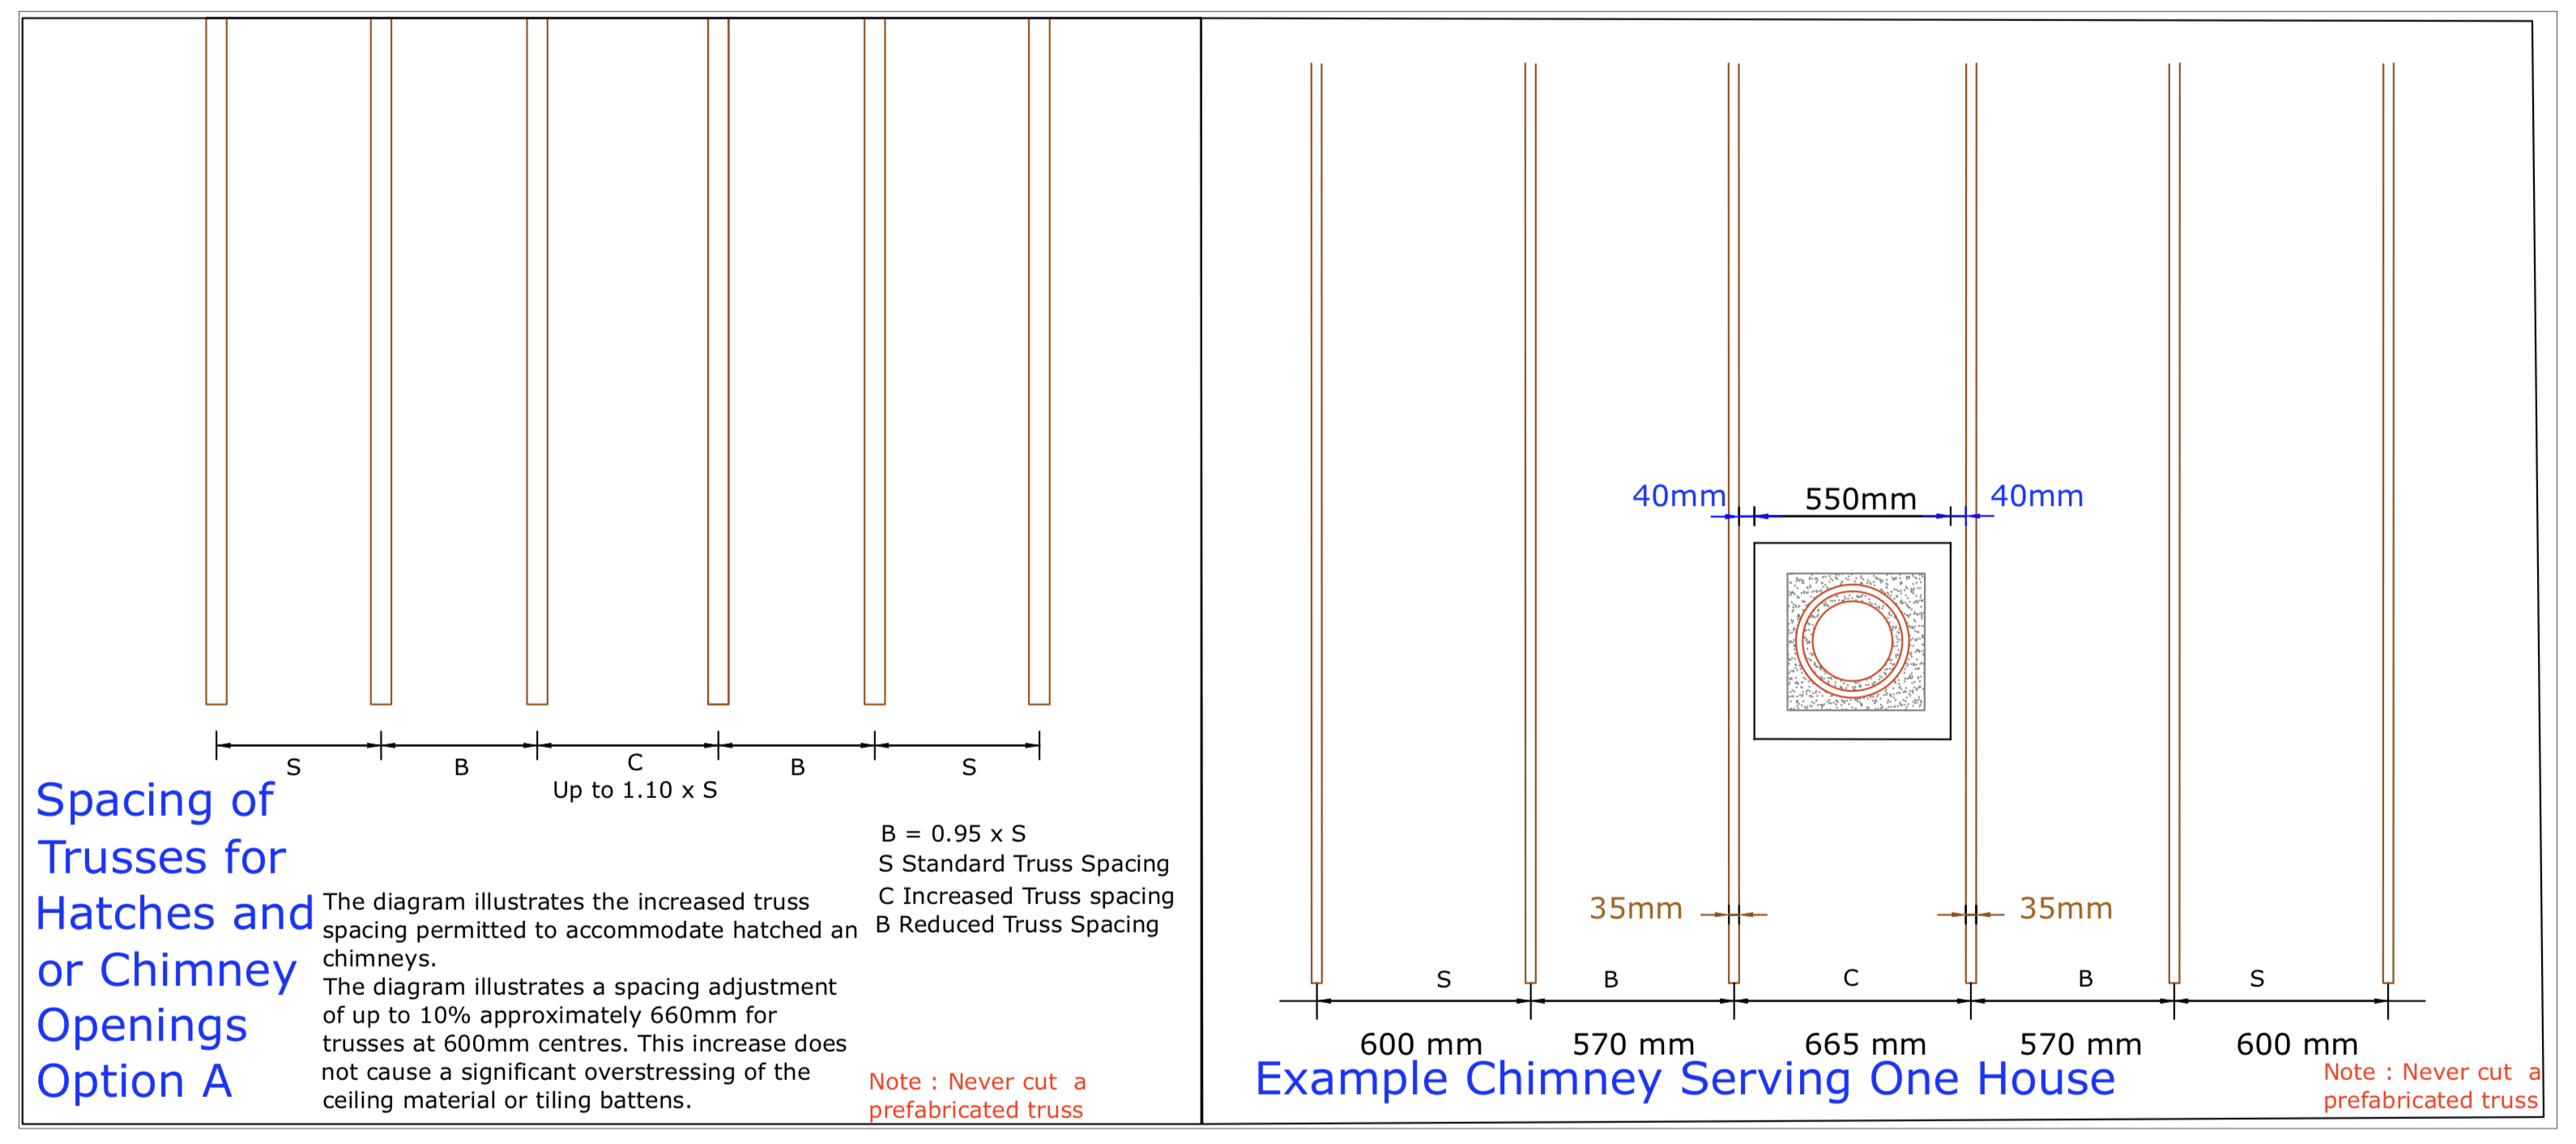 DIAGRAM 14 Chimney Opening less than 660mm